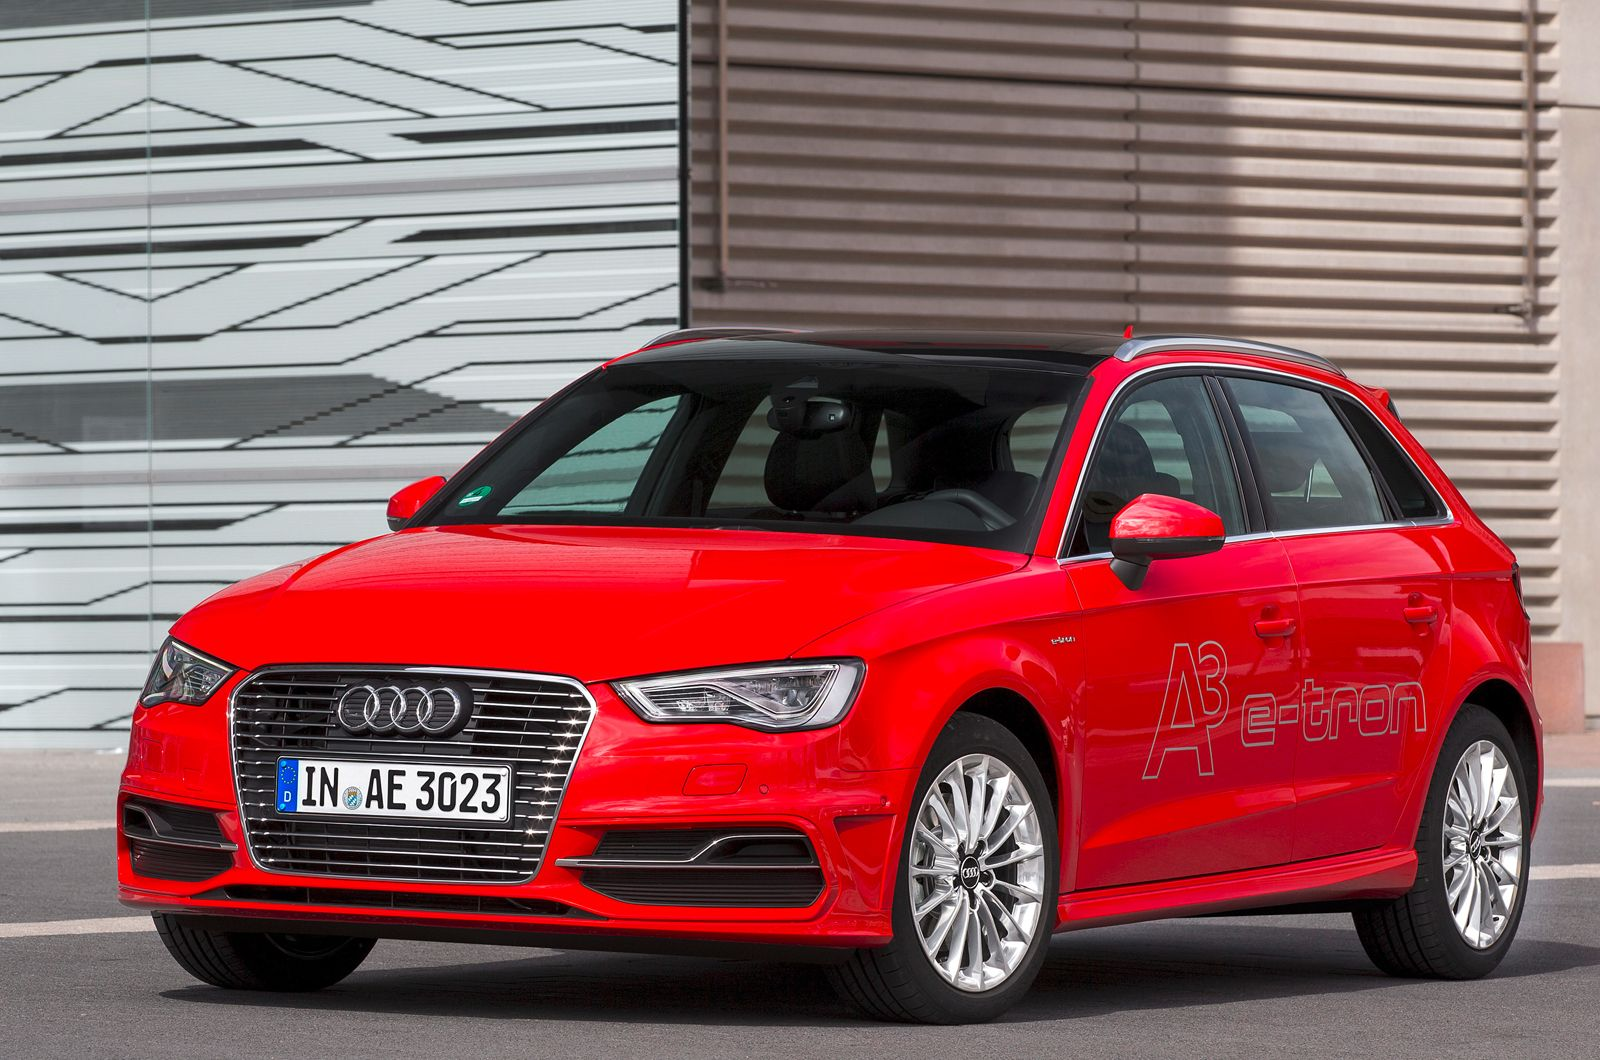 Audi A3 etron first drive review (With images) Audi a3